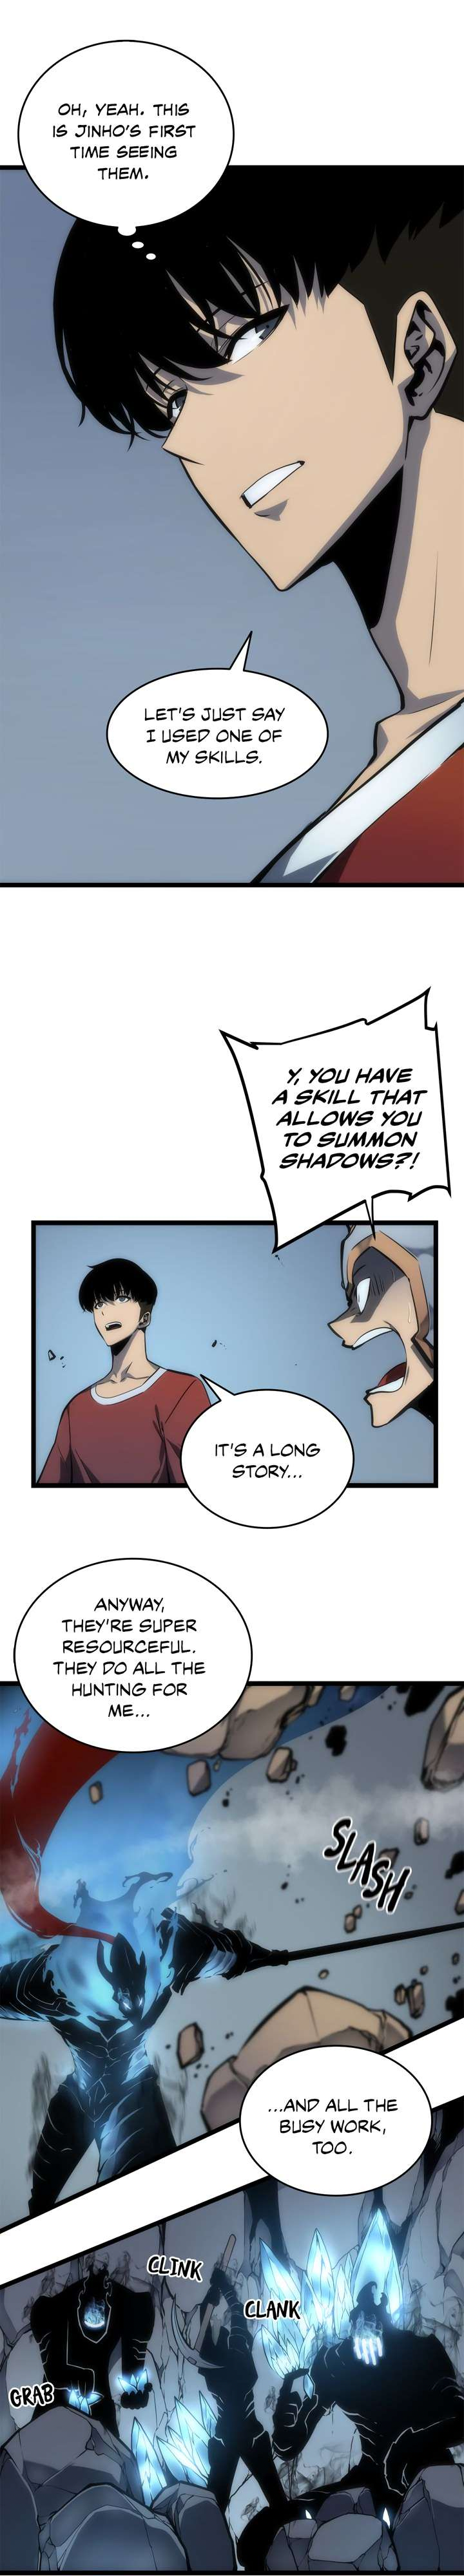 Solo Leveling Chapter 56 Page 3